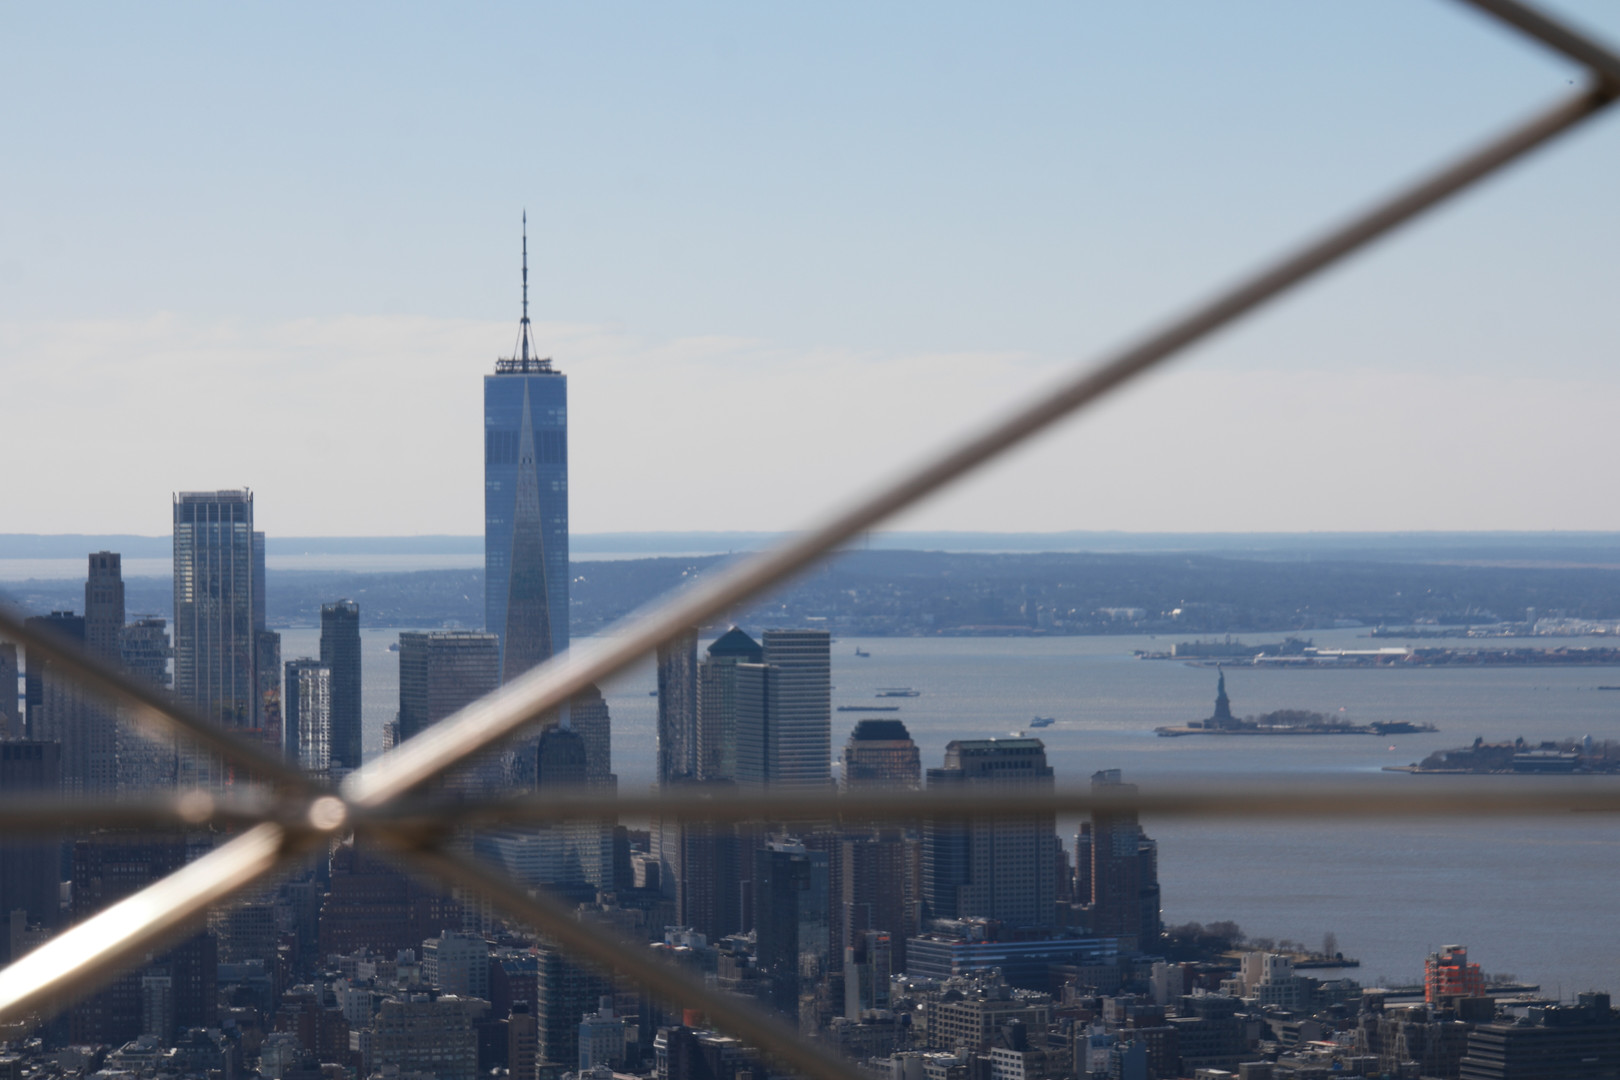 Freedom tower from Empire State